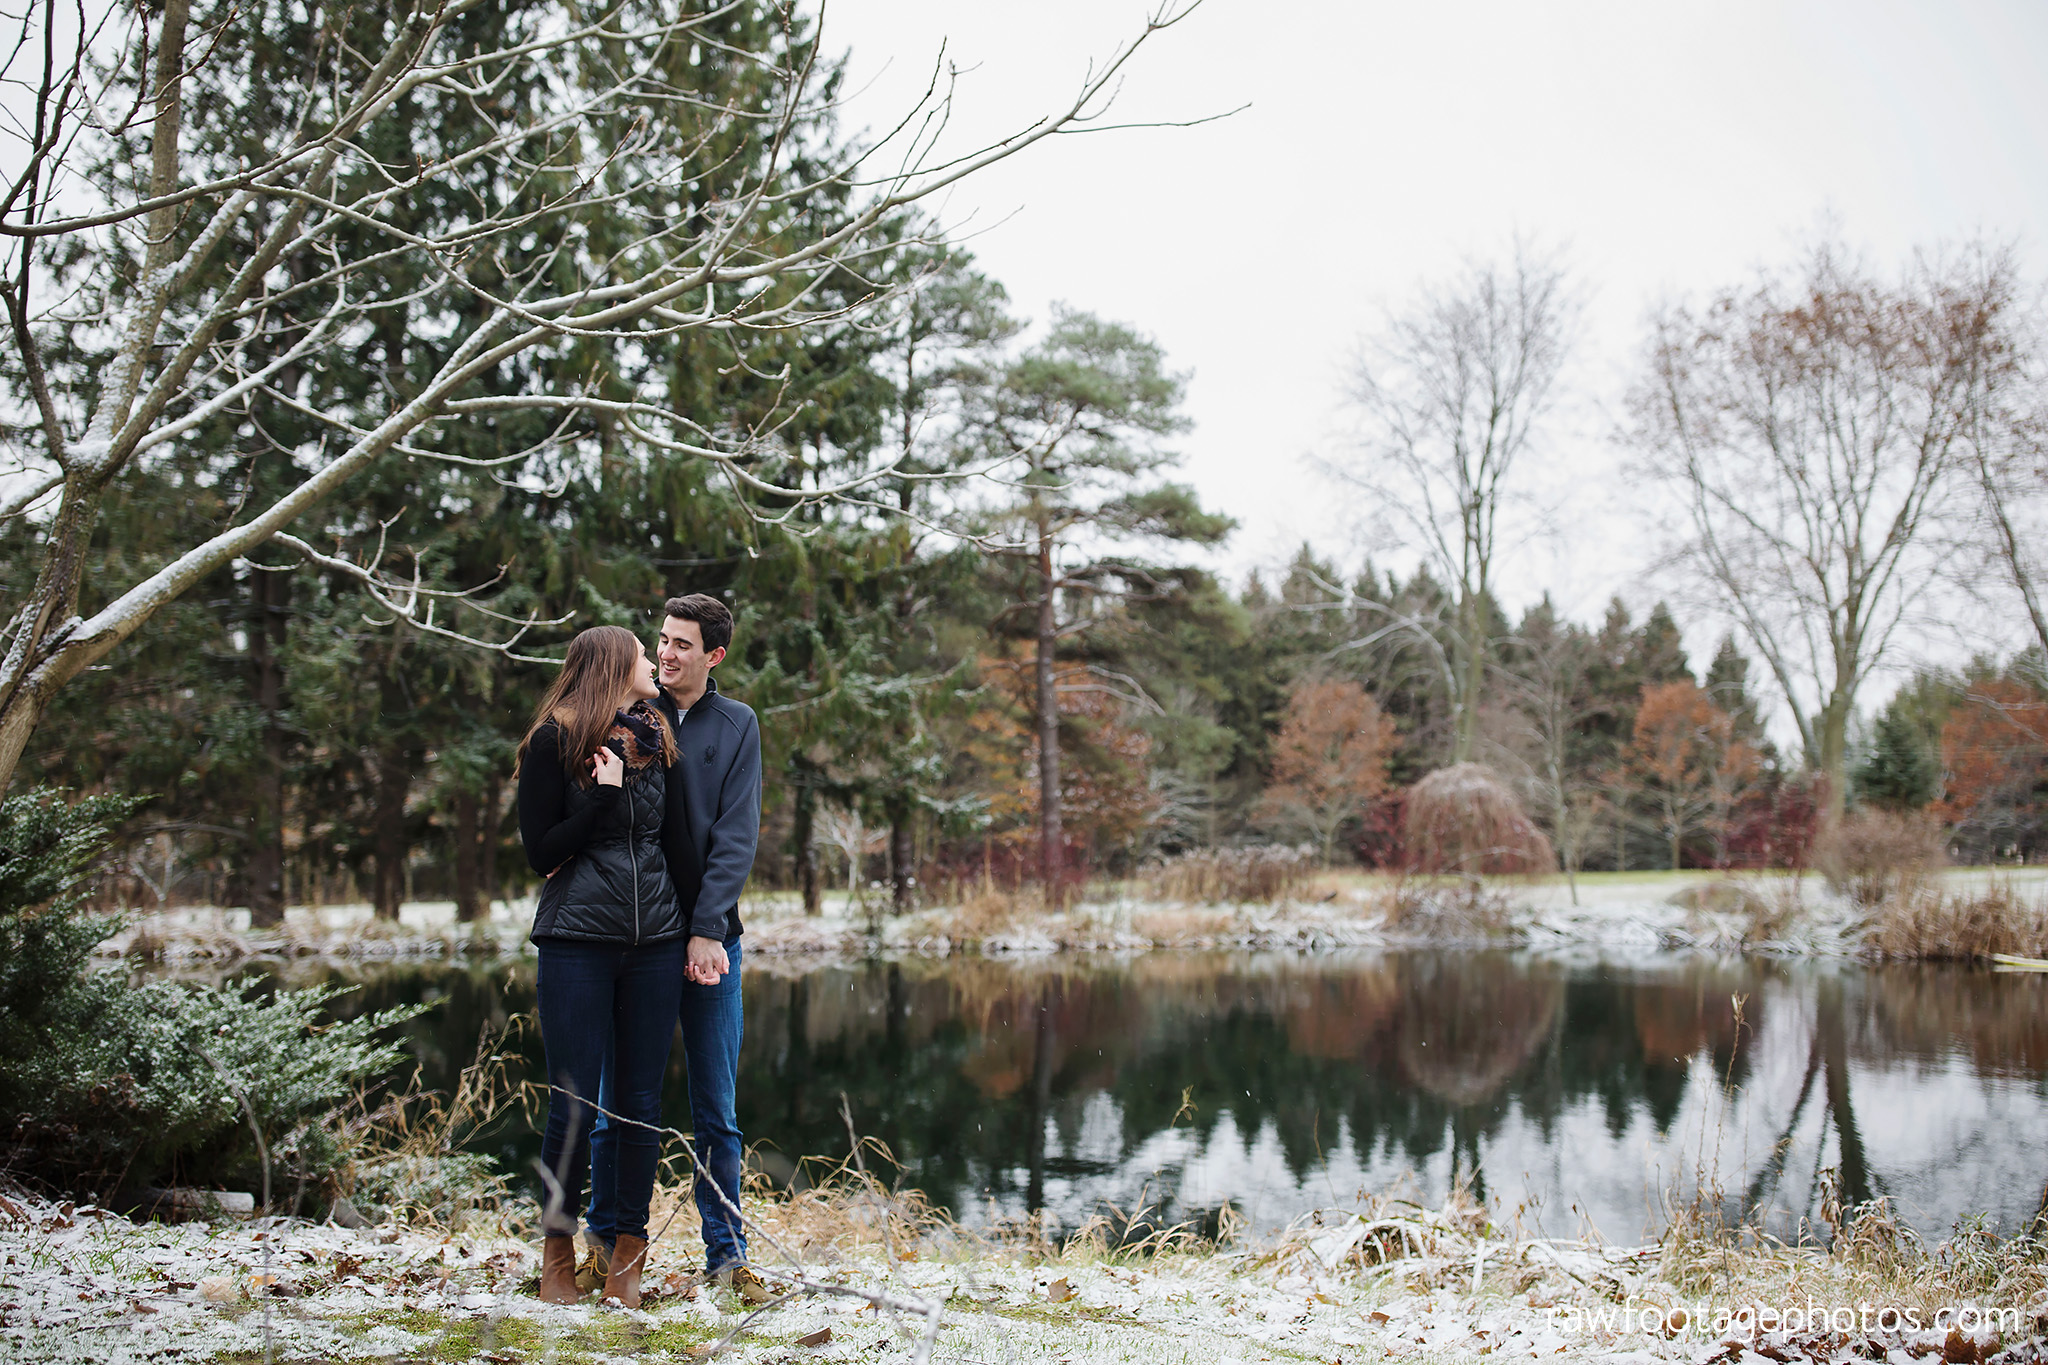 london_ontario_wedding_photographer-snowy_engagement_session-winter-barn-farm-snowflakes-blizzard-raw_footage_photography004.jpg